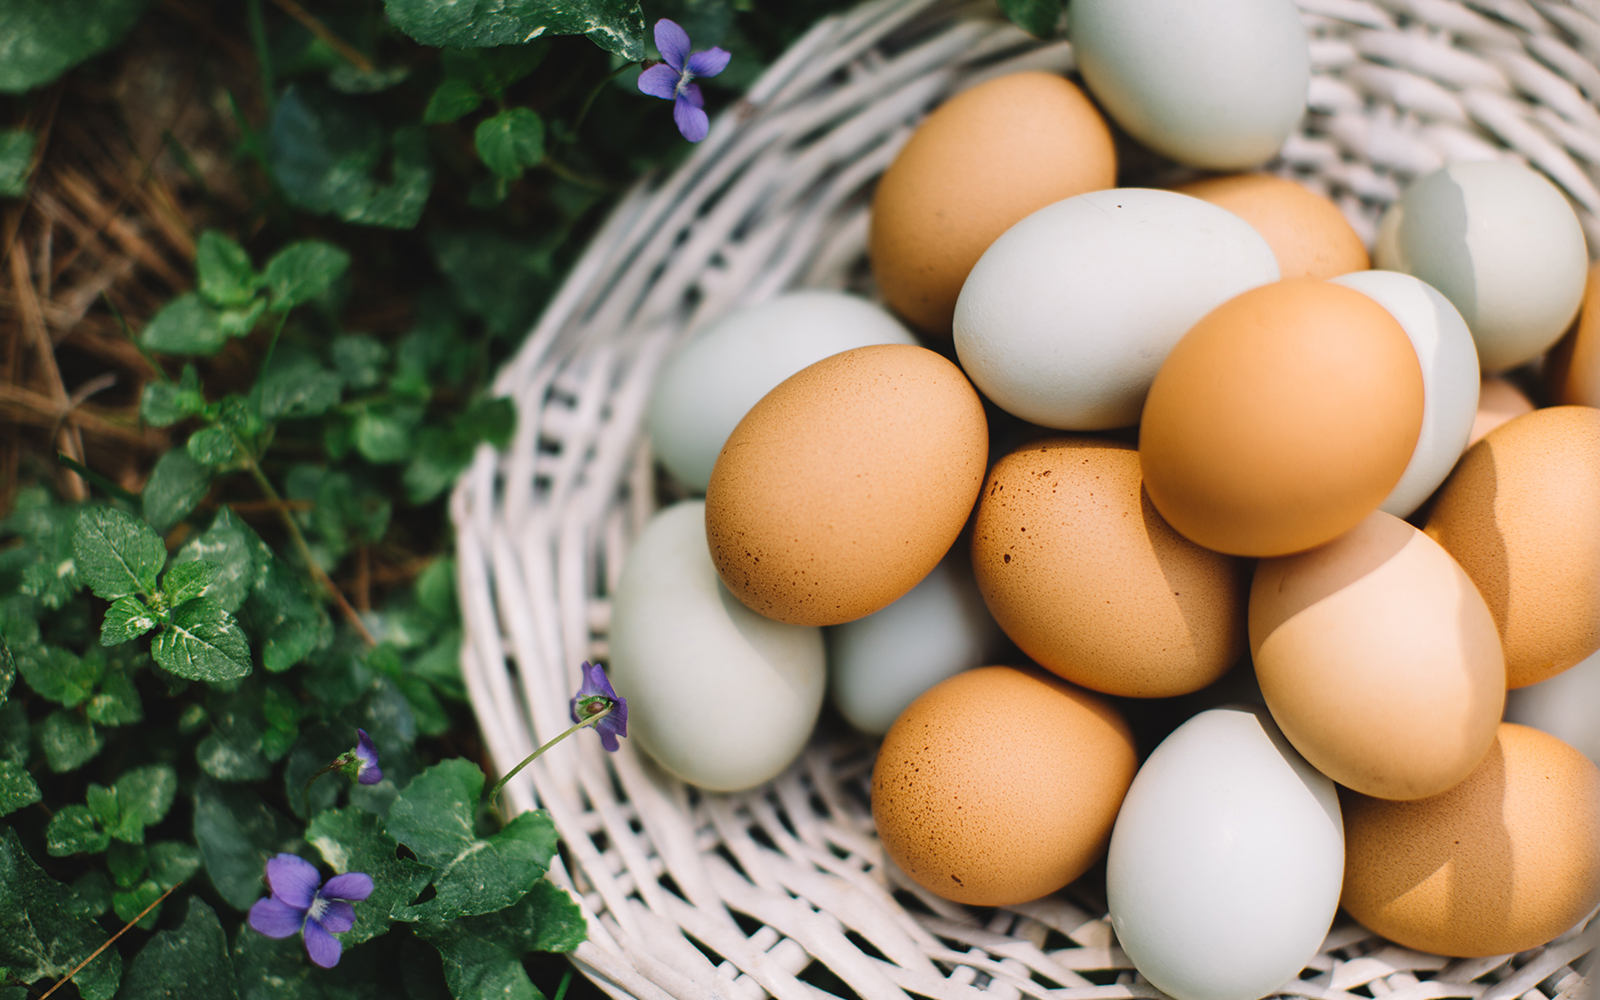 How secure is cloud storage? Don't put all the eggs in one basket!